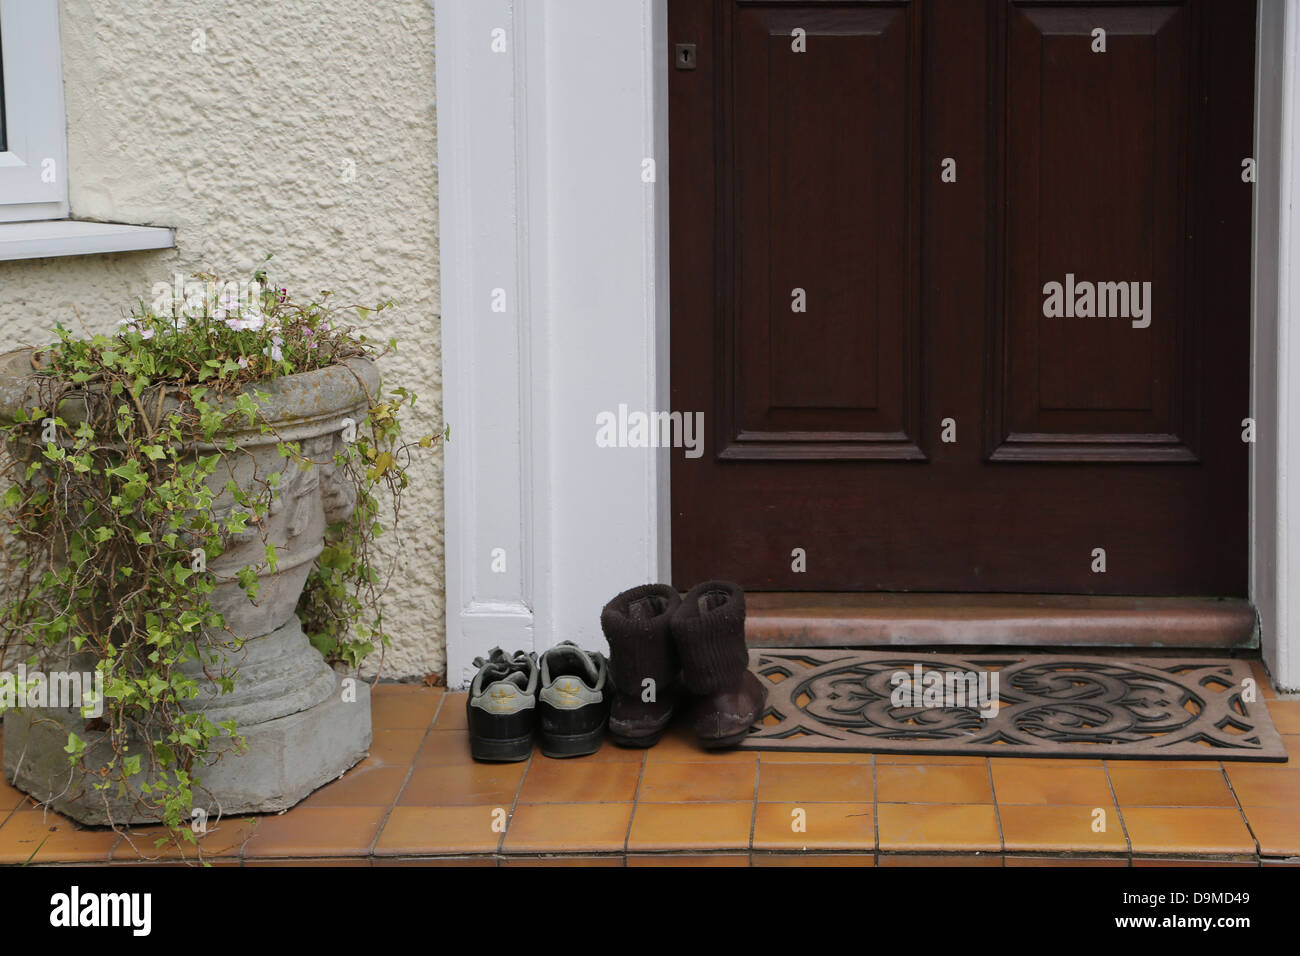 A Couple Of Pairs Of Shoes By Door Mat Outside House People Have Taken Shoes  Off Before Entering The House